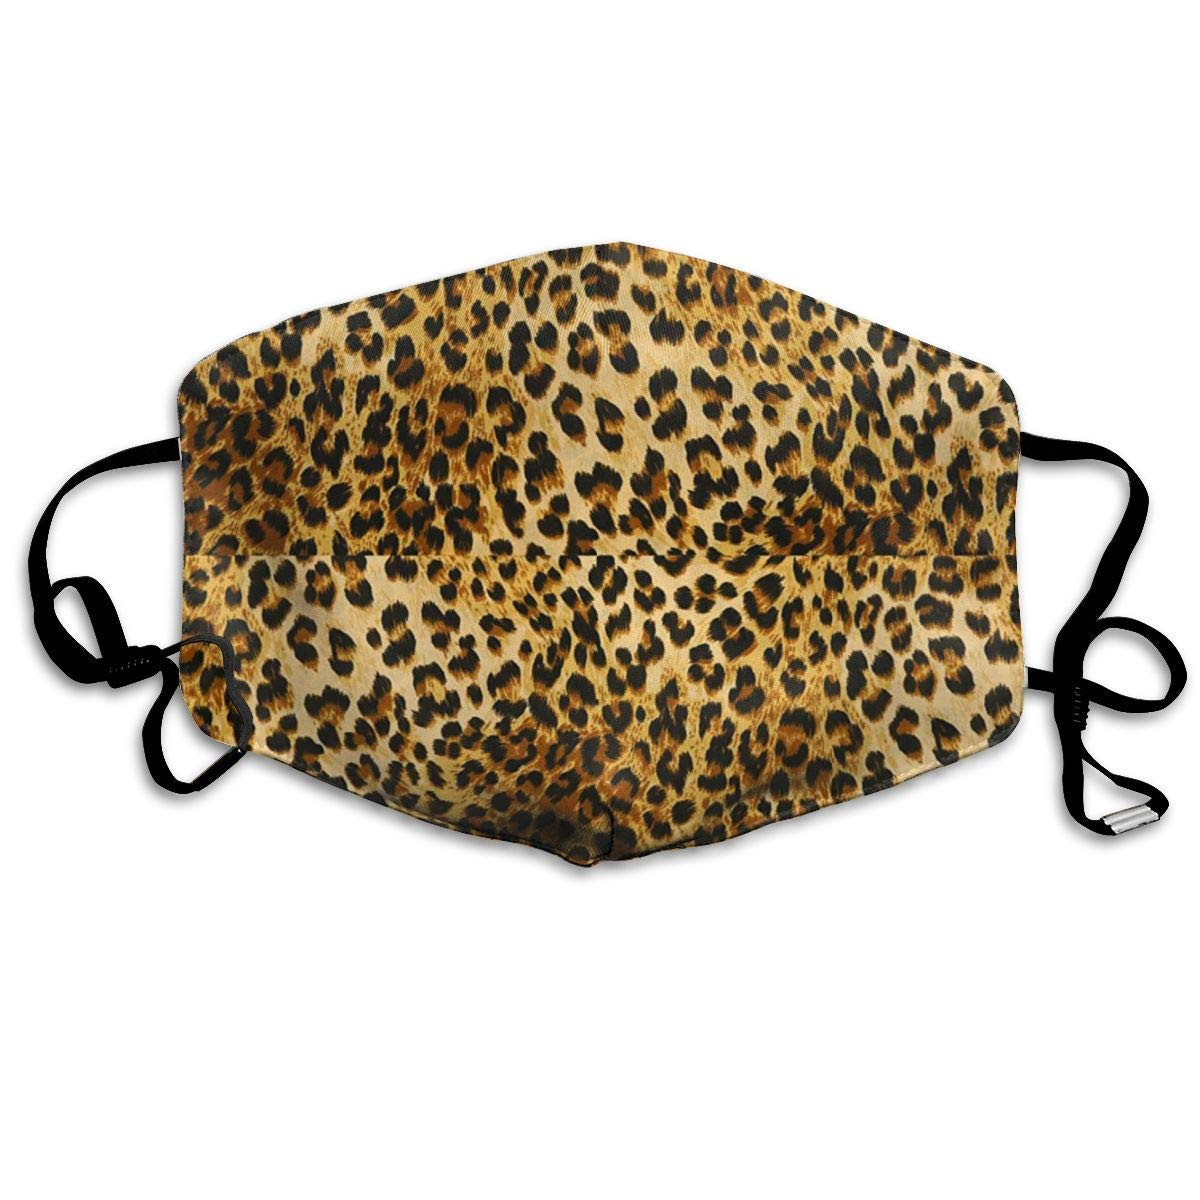 Vbnbvn Boca Máscara,Mascarillas,Máscaras bucales,Leopard Pattern Anti Dust Face Mouth Cover Mask Respirator – Dustproof Anti- Washable – Reusable Masks Respirator Windproof Mask